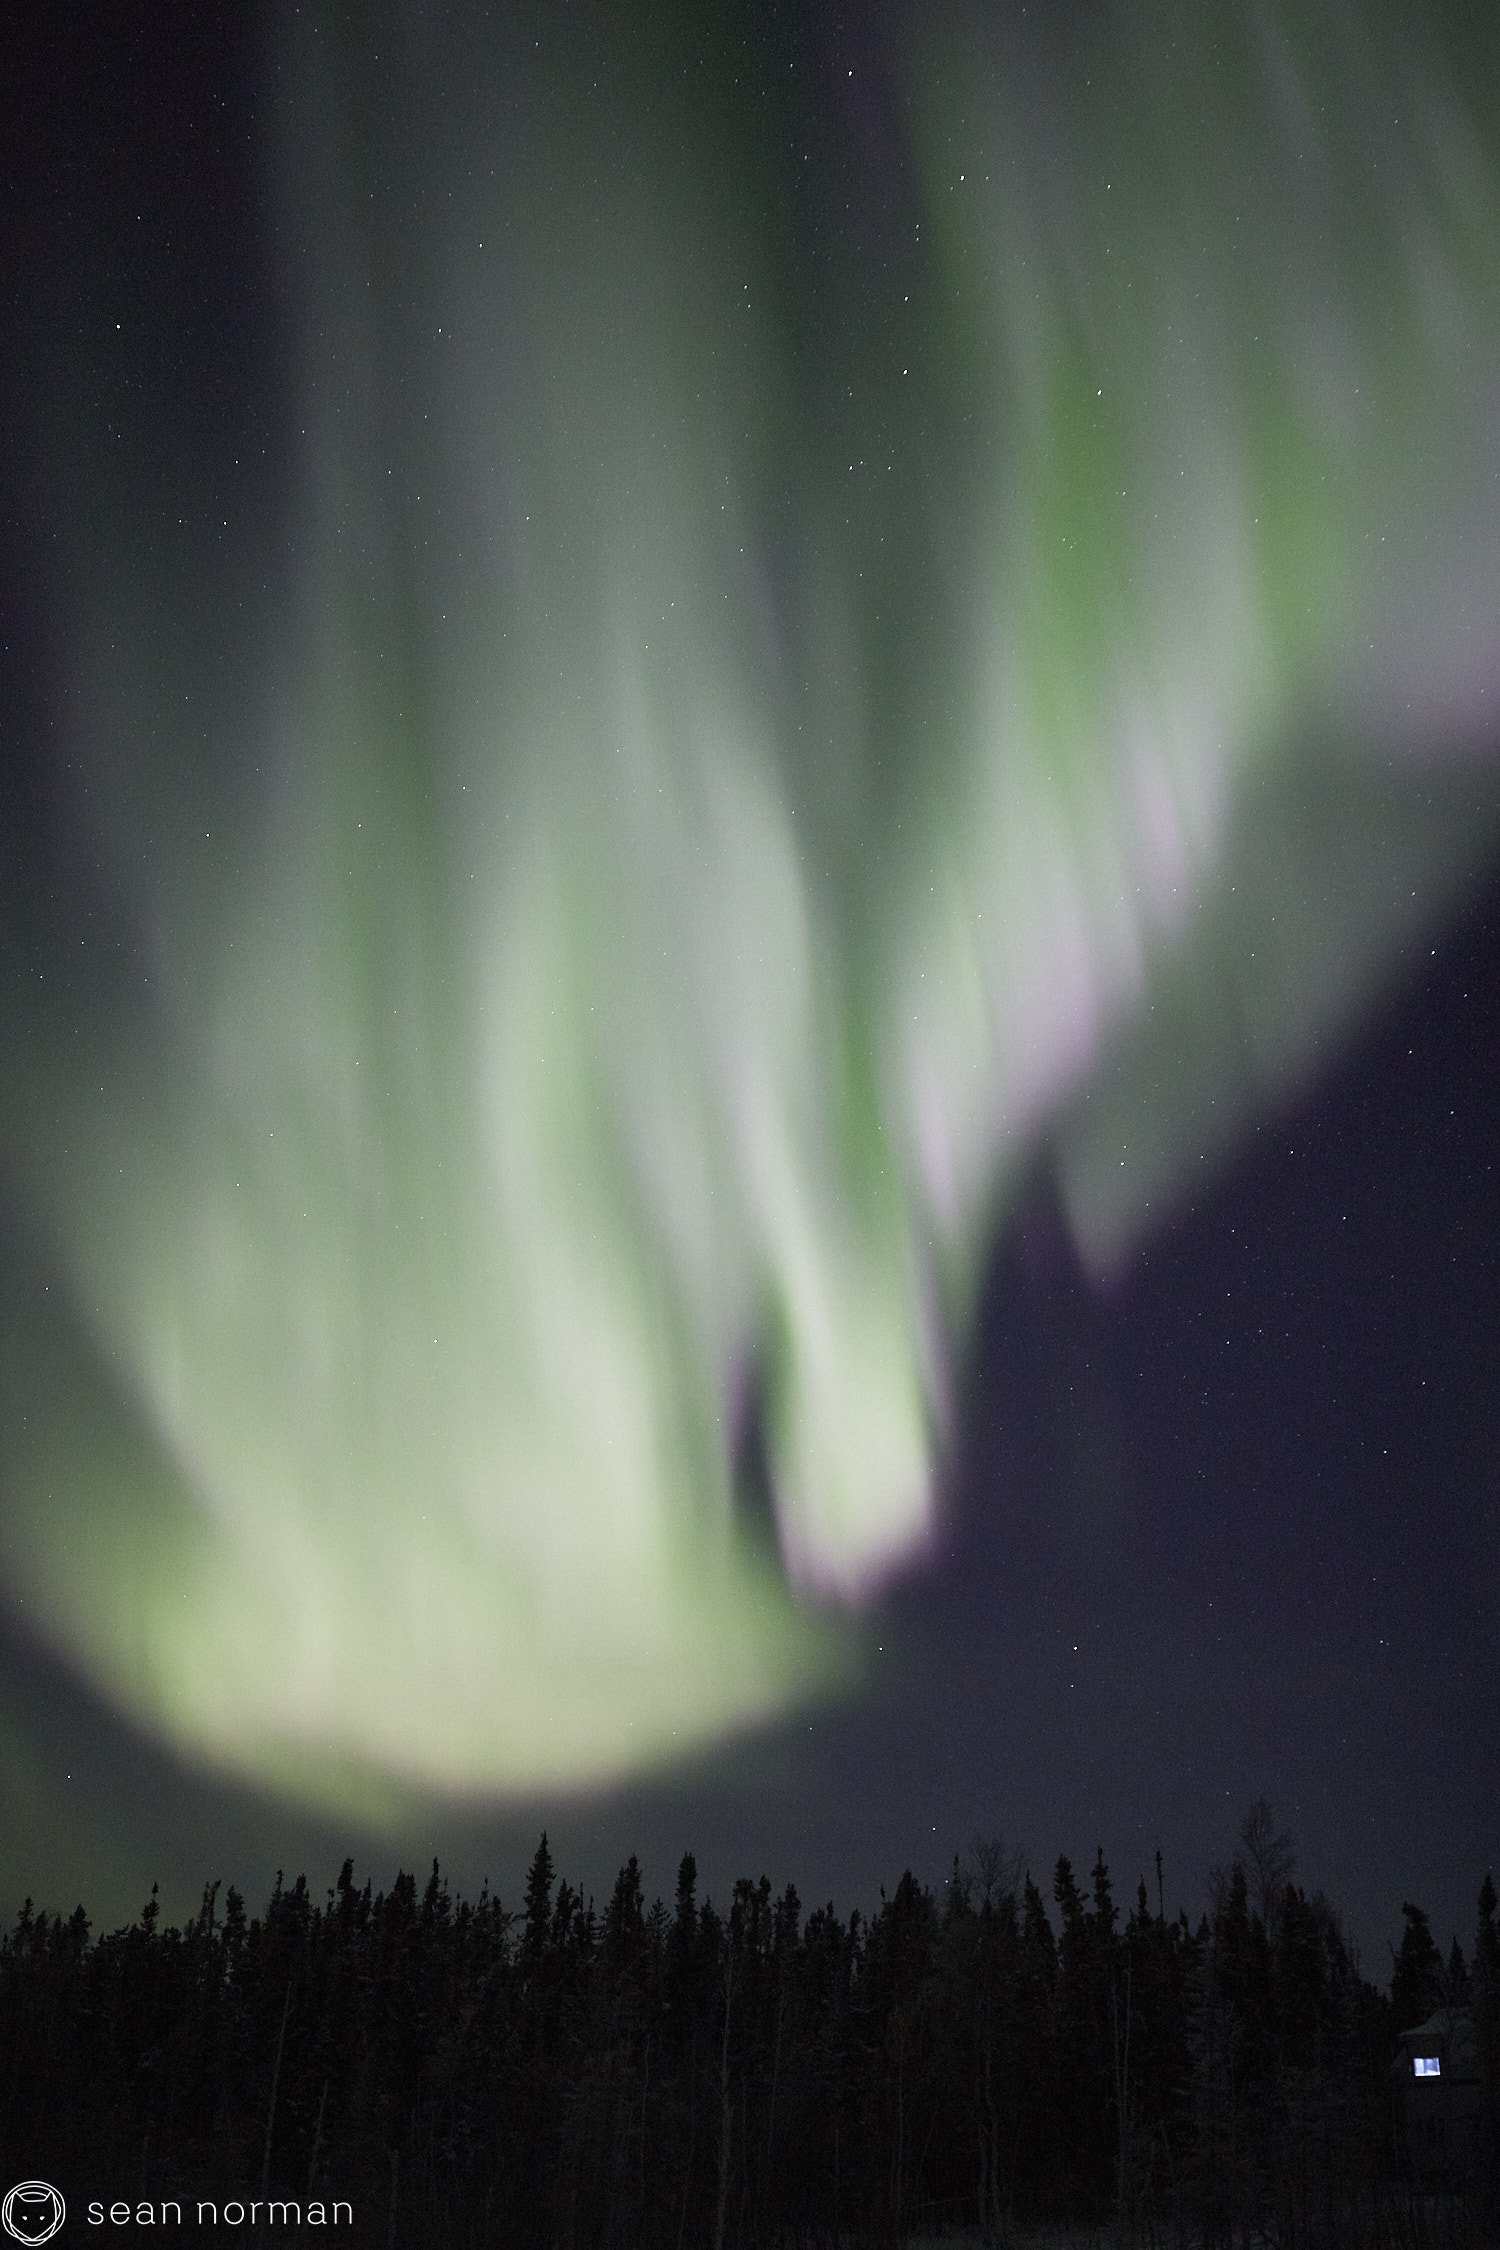 Sean Norman - Yellowknife Aurora Hunting Tour - Northern Lights Tour Guide - 4.jpg